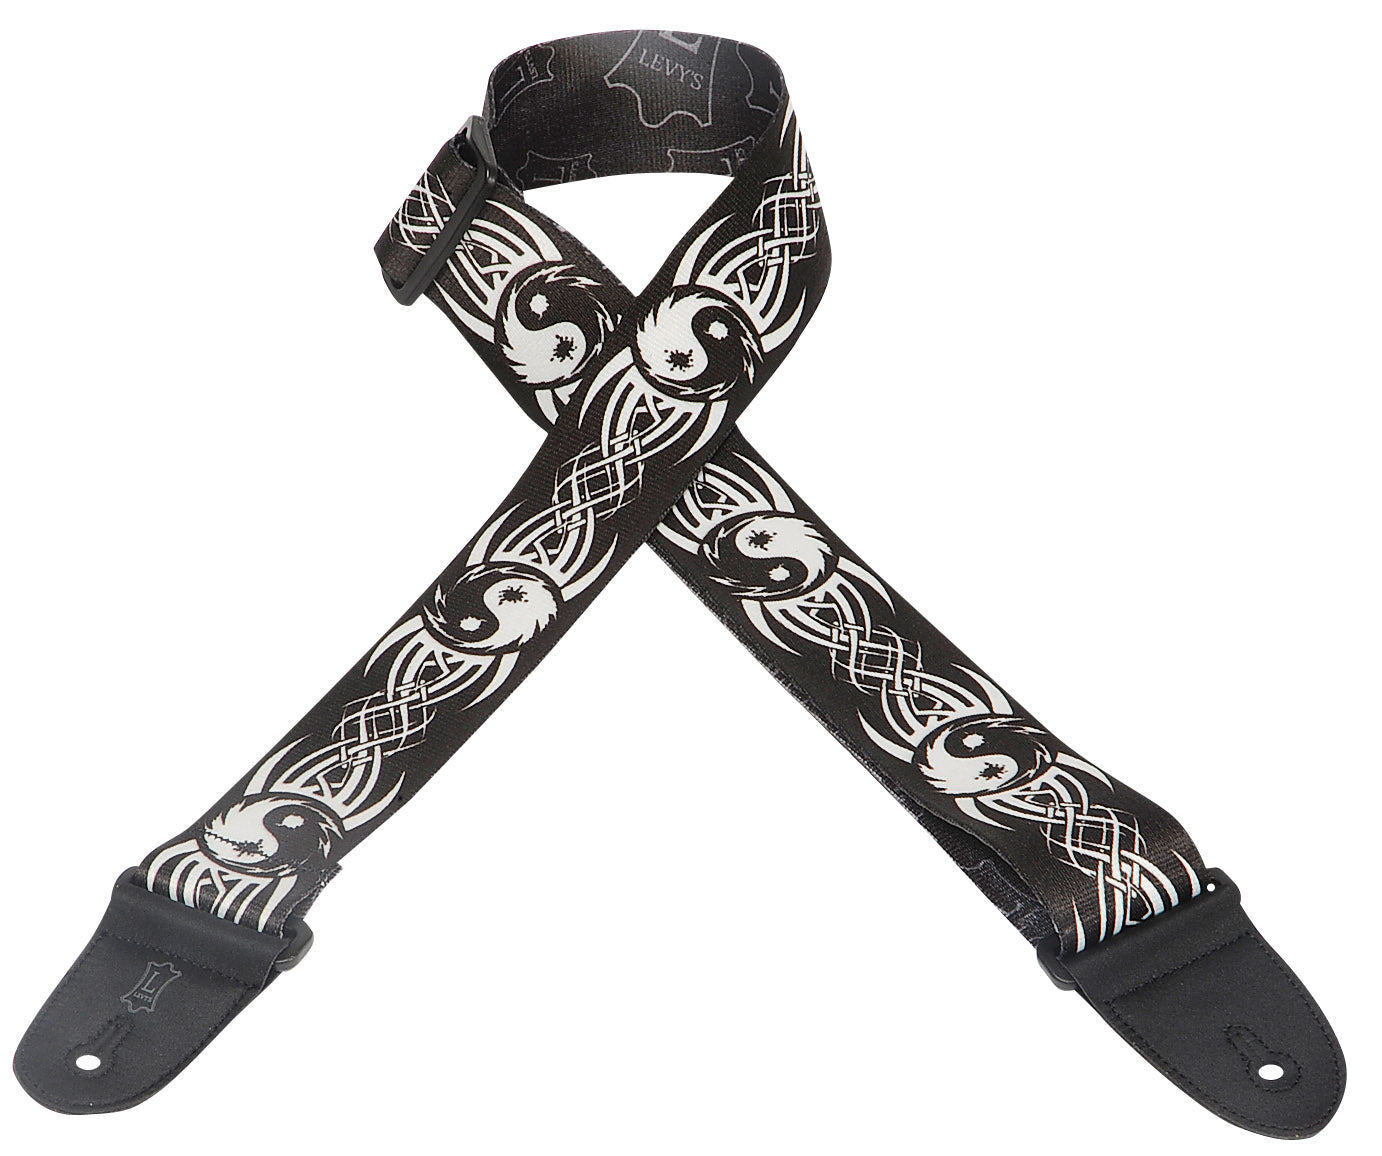 "LEVY'S 2"" POLYESTER GUITAR STRAP WITH PRINTED DESIGN BLACK/WHITE YIN AND YANG"